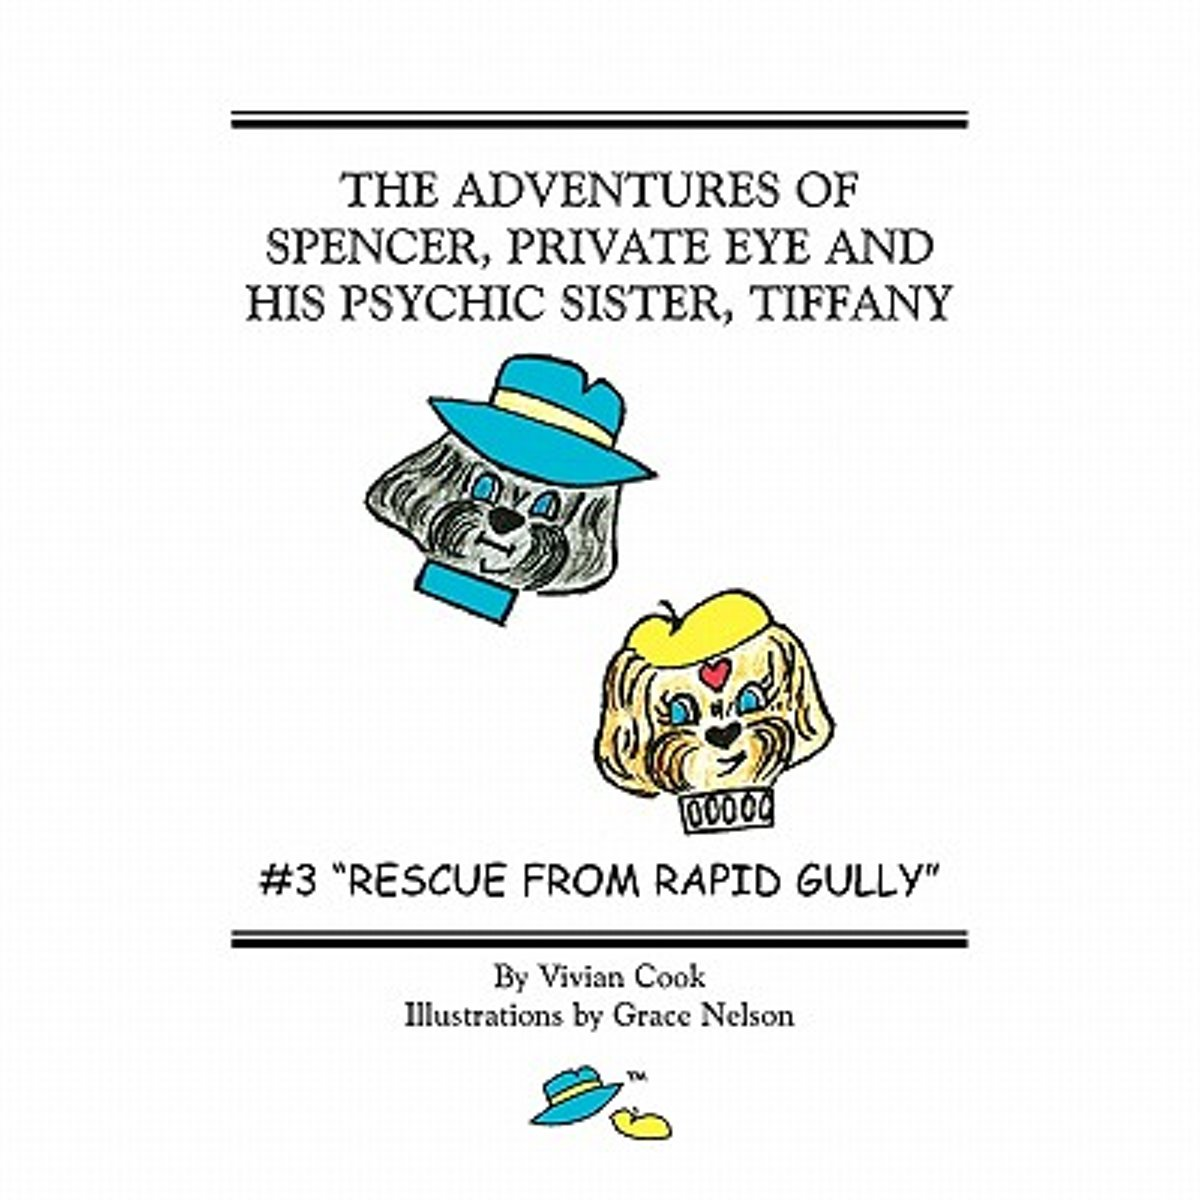 The Adventures of Spencer, Private Eye and His Psychic Sister, Tiffany